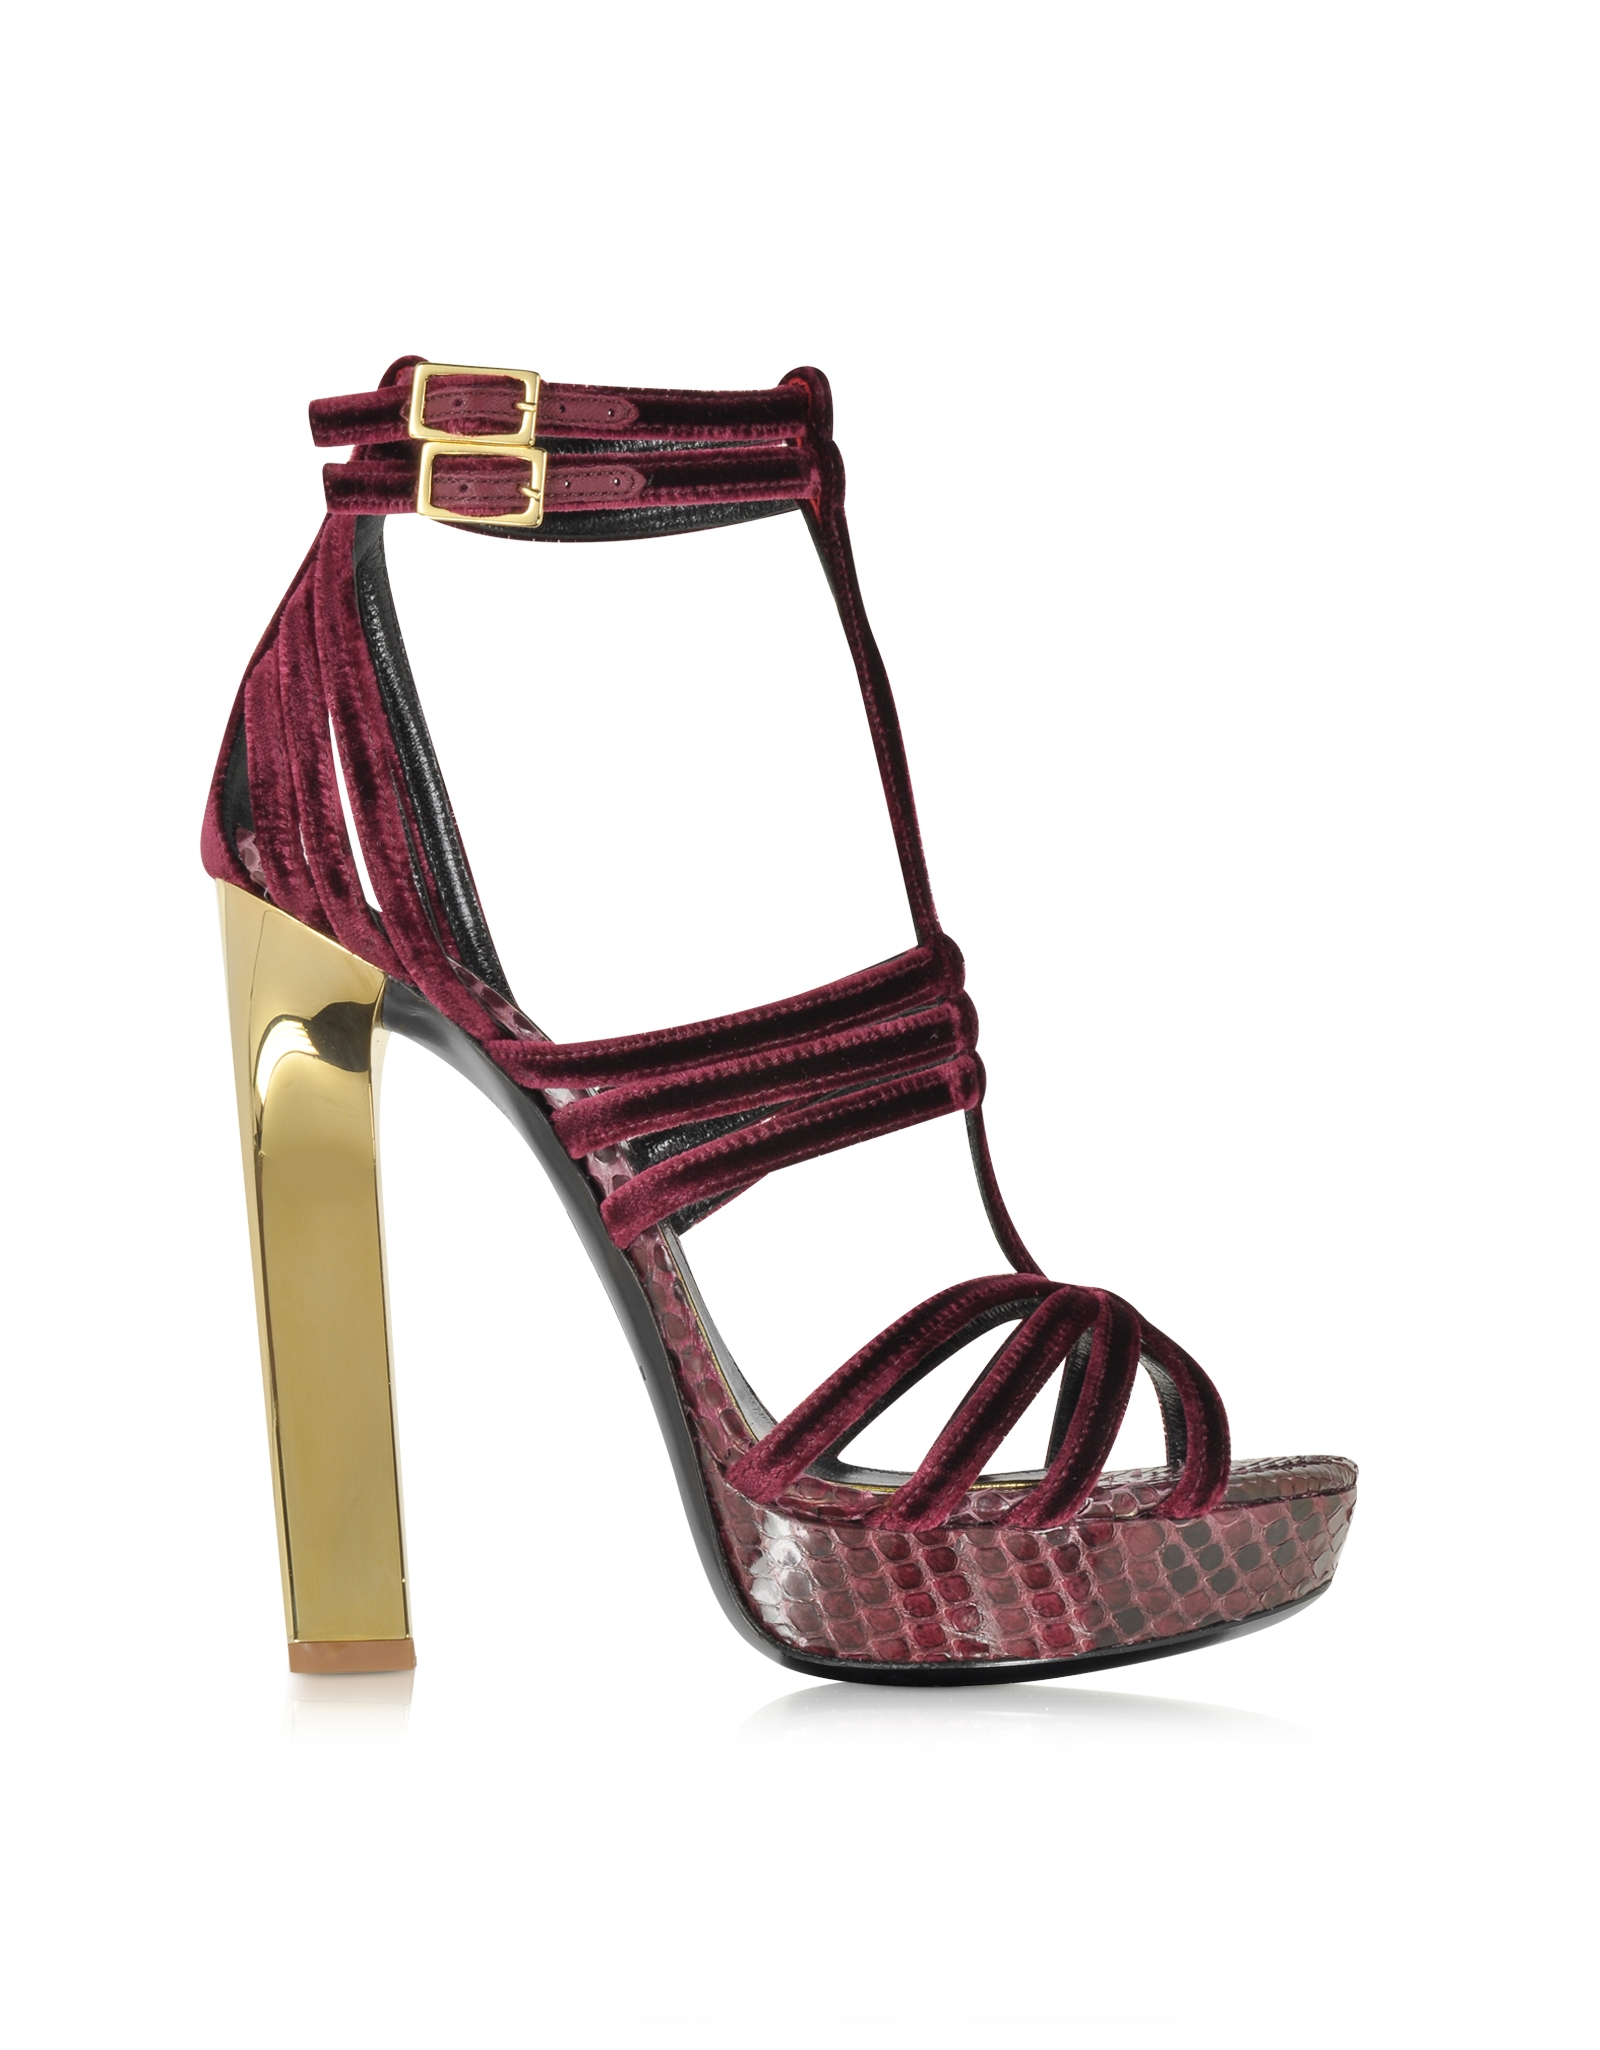 Emilio Pucci Python Sandals Clearance Pick A Best Cheap Sale Footaction Cheap Sale Free Shipping From China Sale Online Buy Cheap Professional TuDjaM